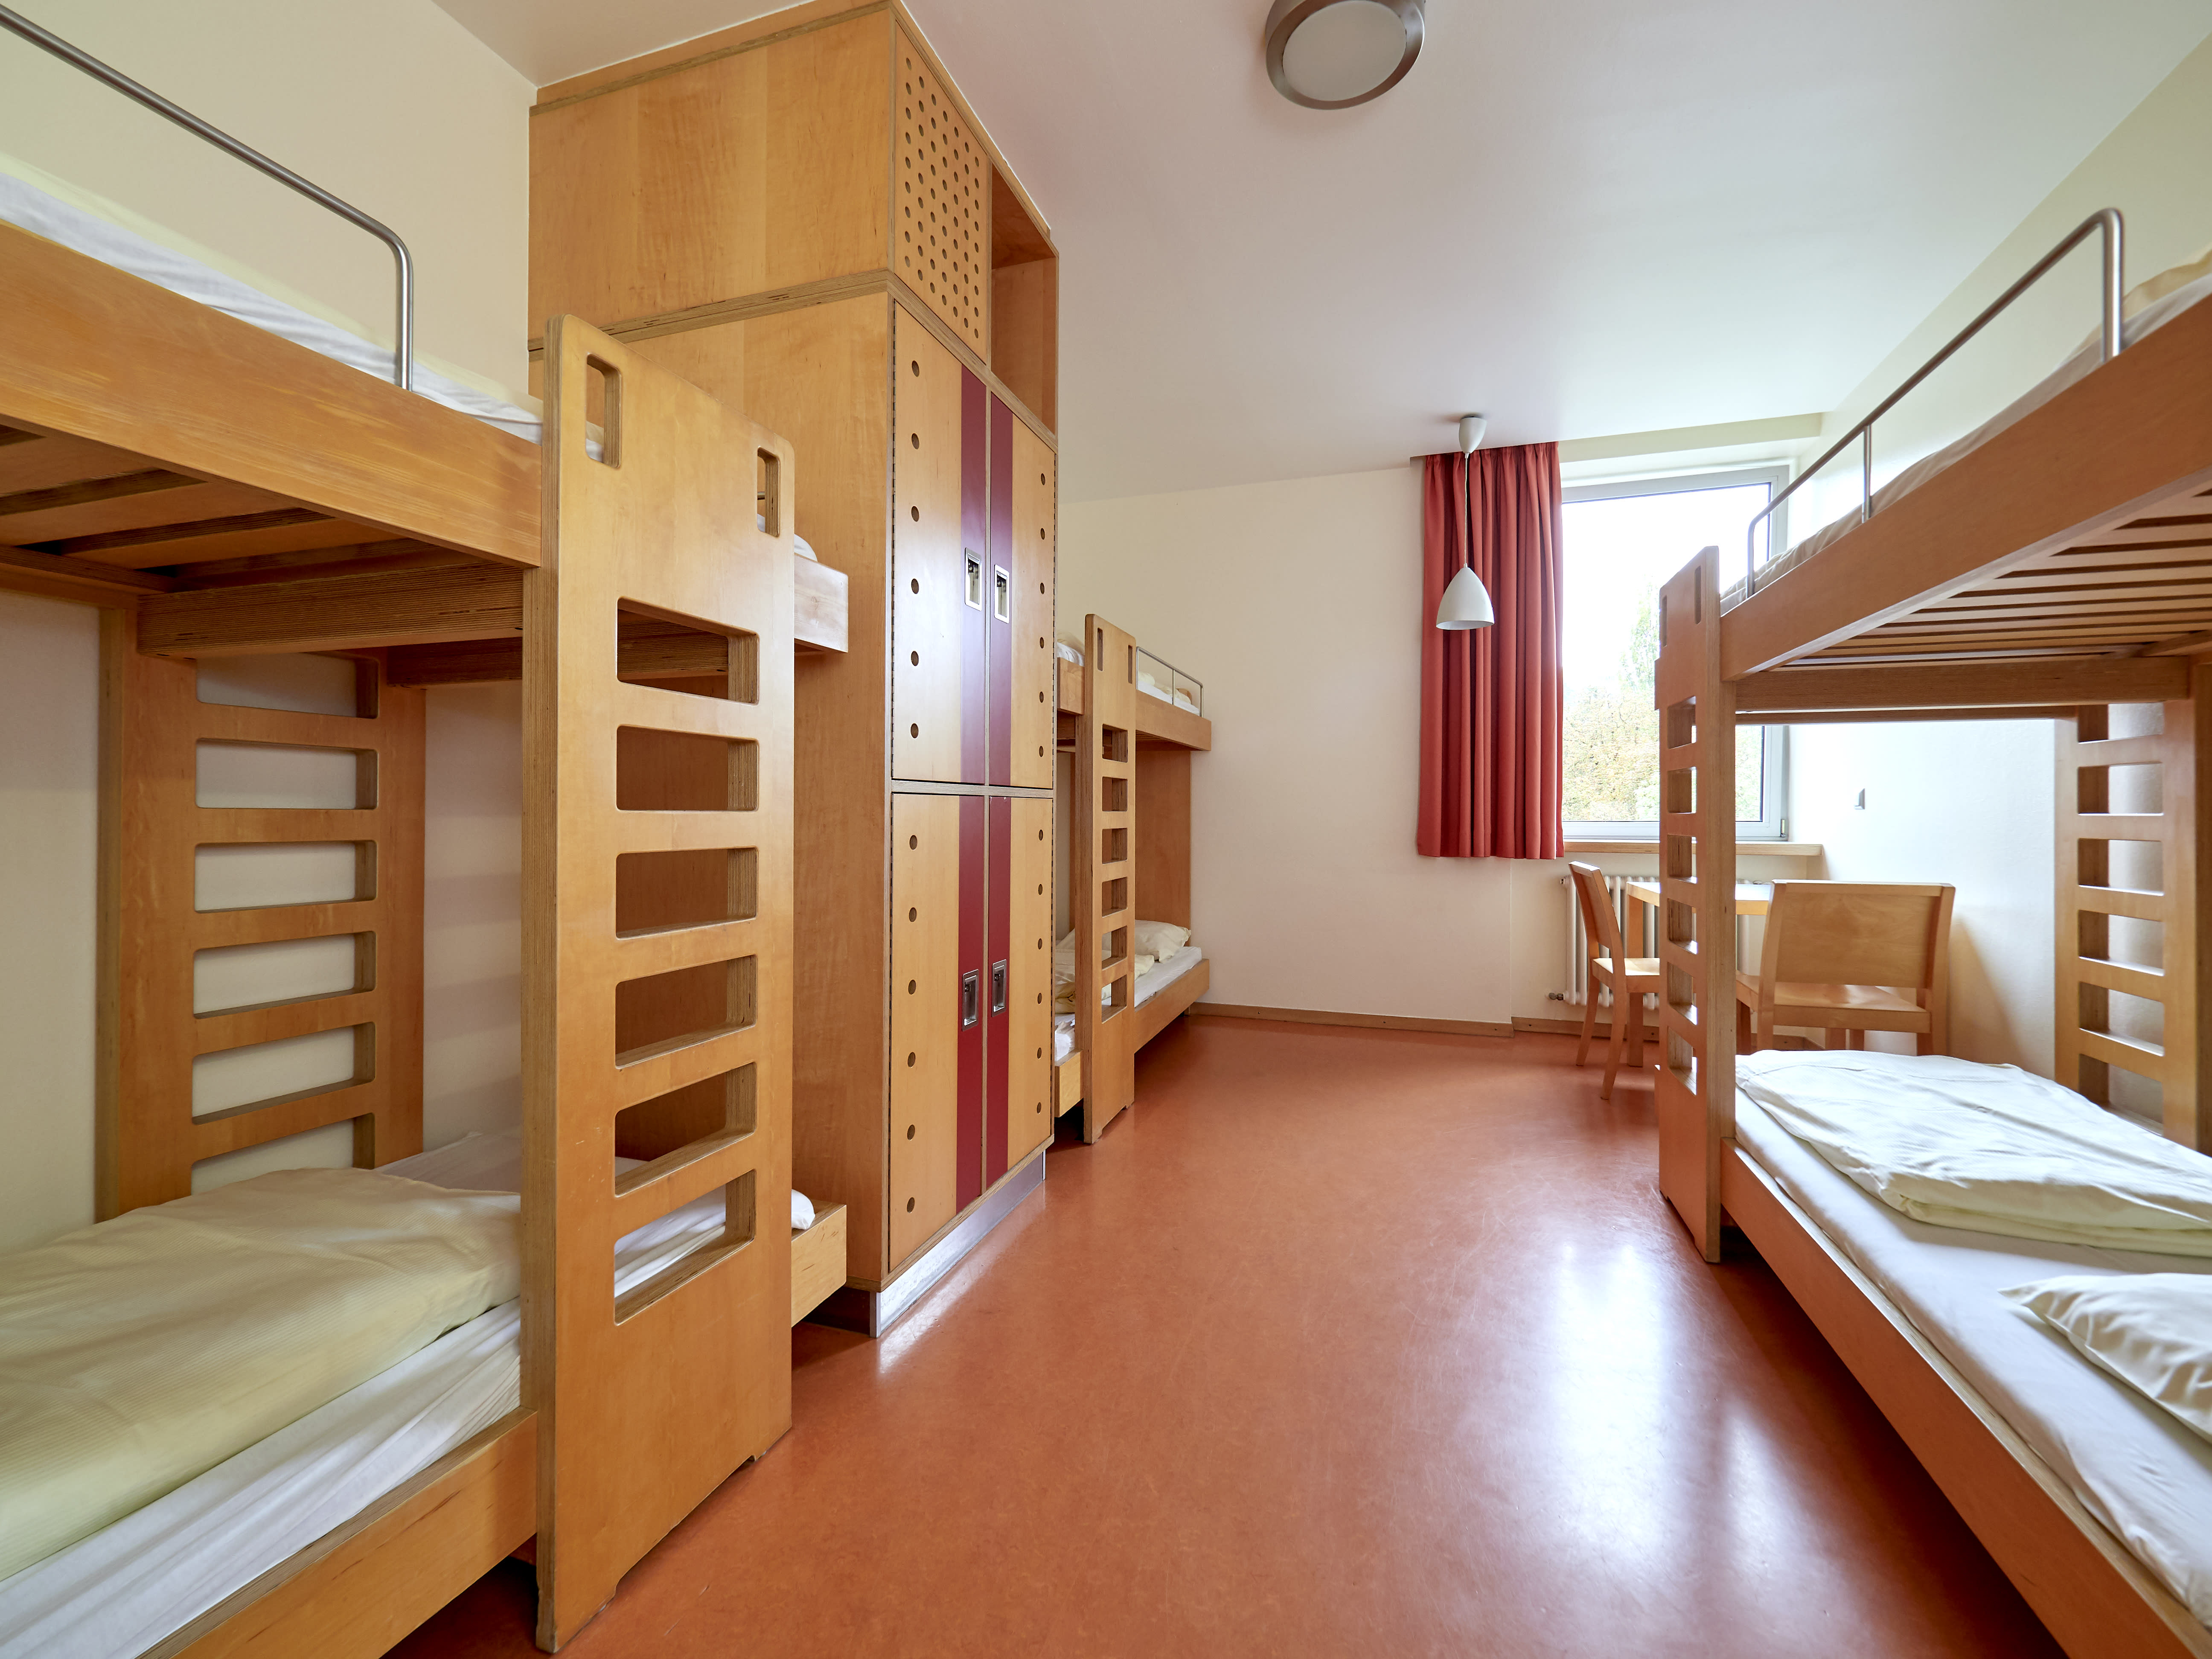 HI Hostels - Luxembourg City